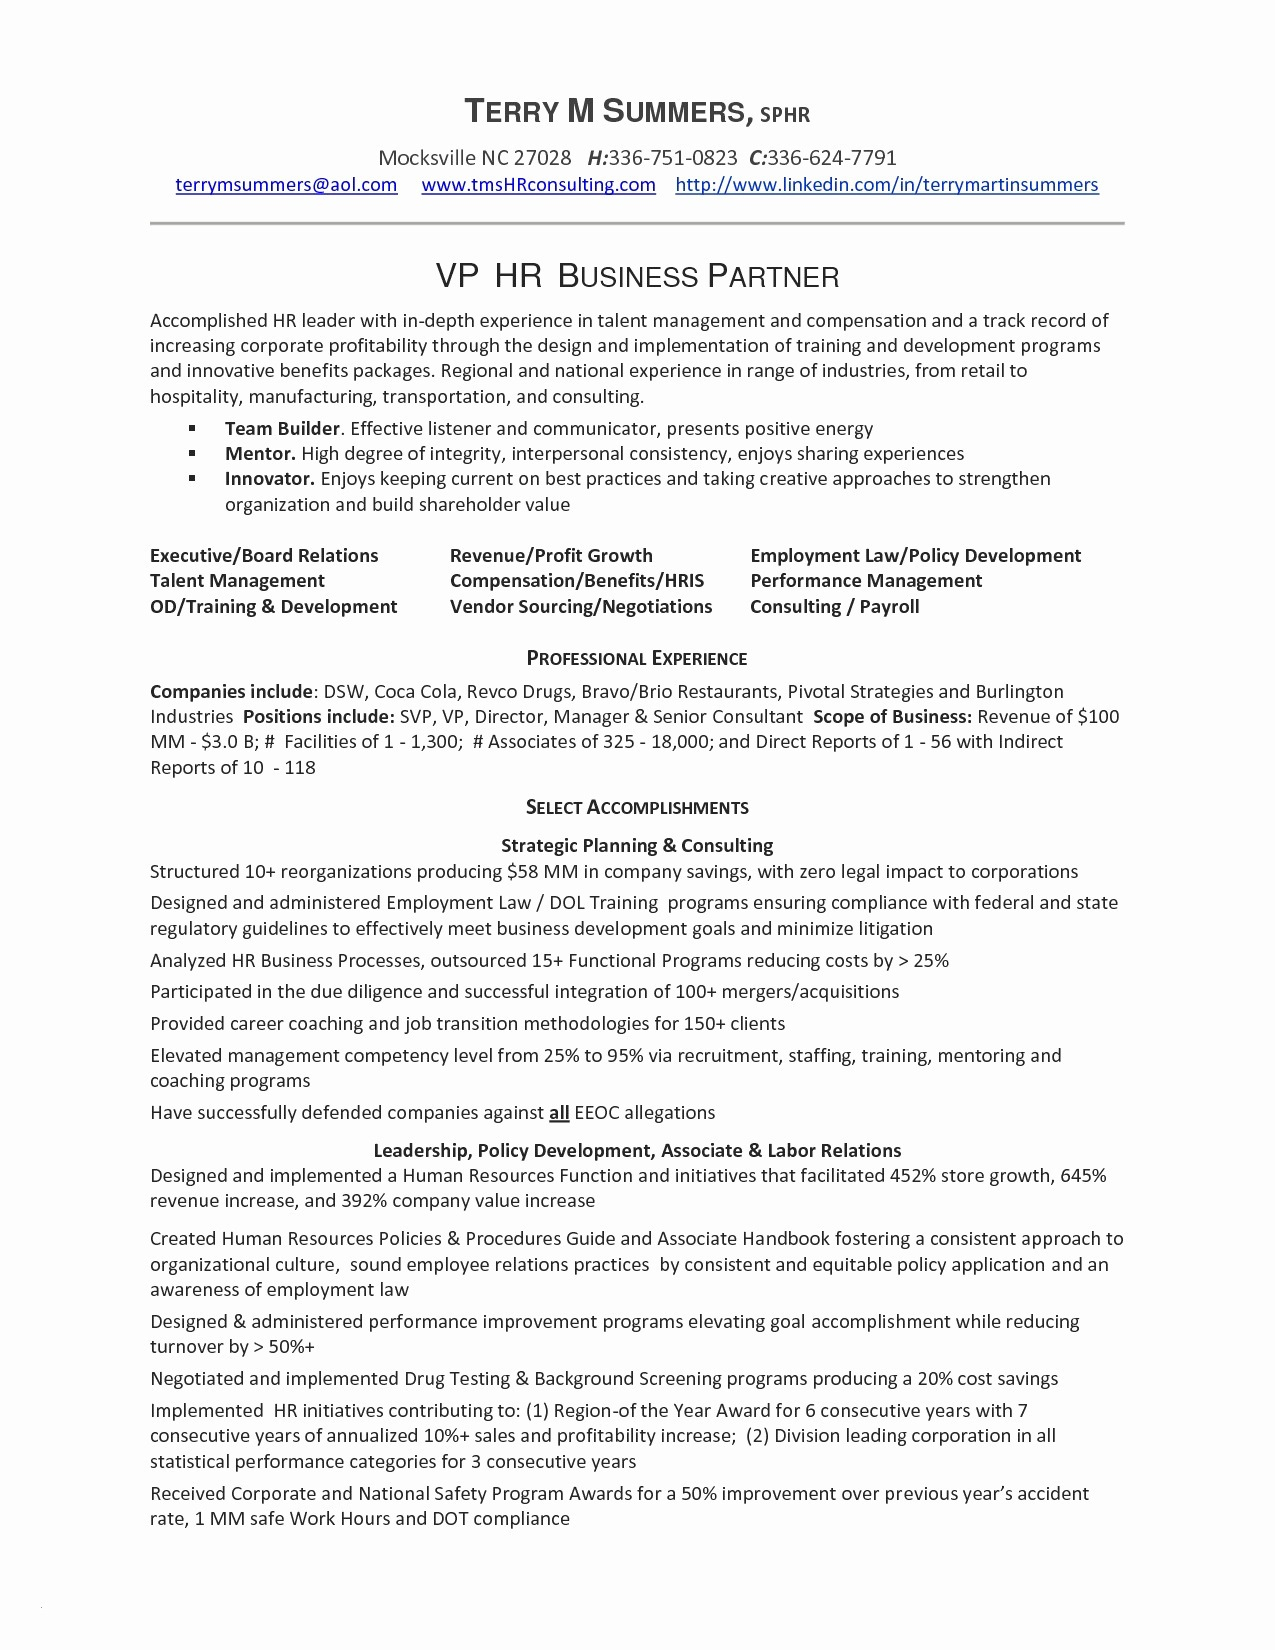 business analyst resume template Collection-Simple Resume format Doc New Resume Template Doc Lovely Business Analyst Resume Sample Doc 14-p